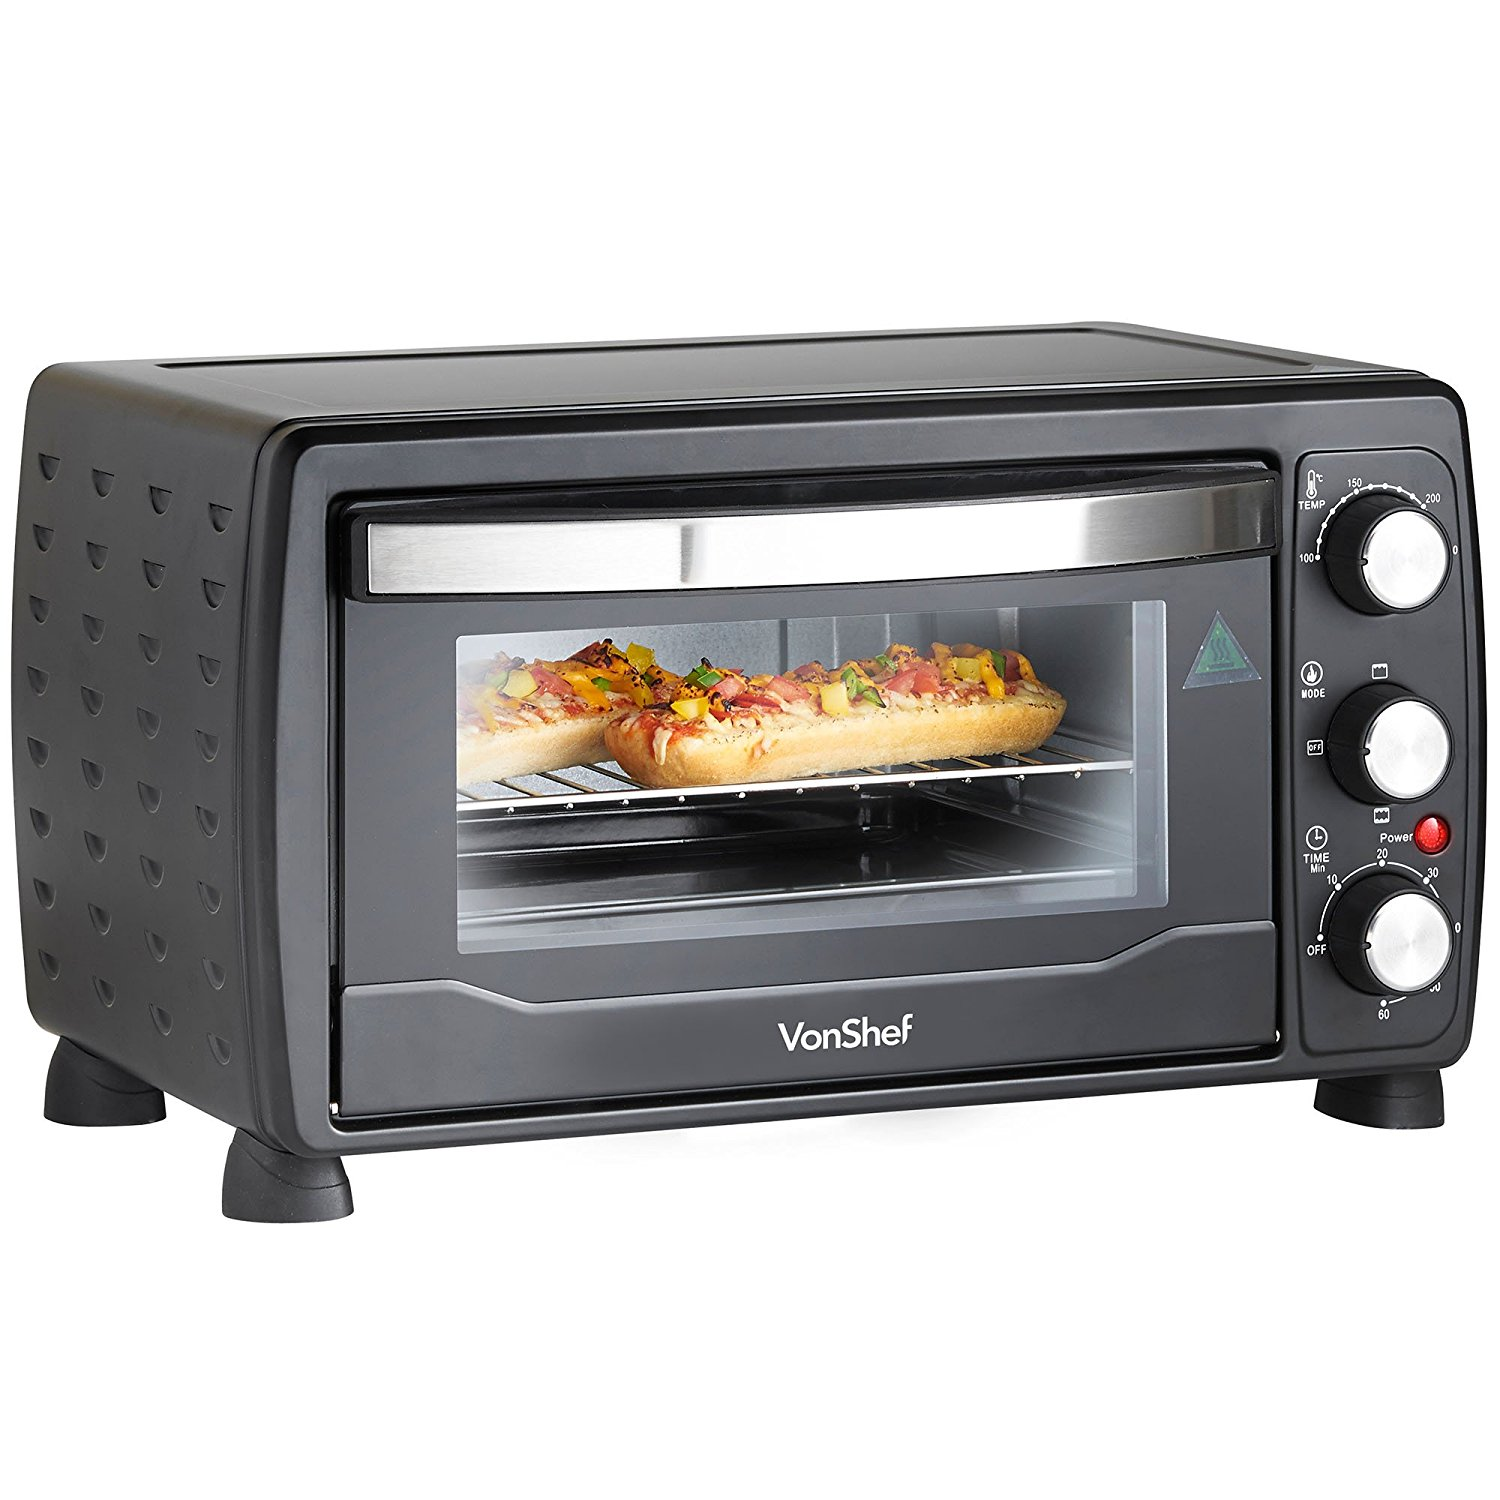 ovens com light fryer page product qvc convection with air cuisinart toaster oven